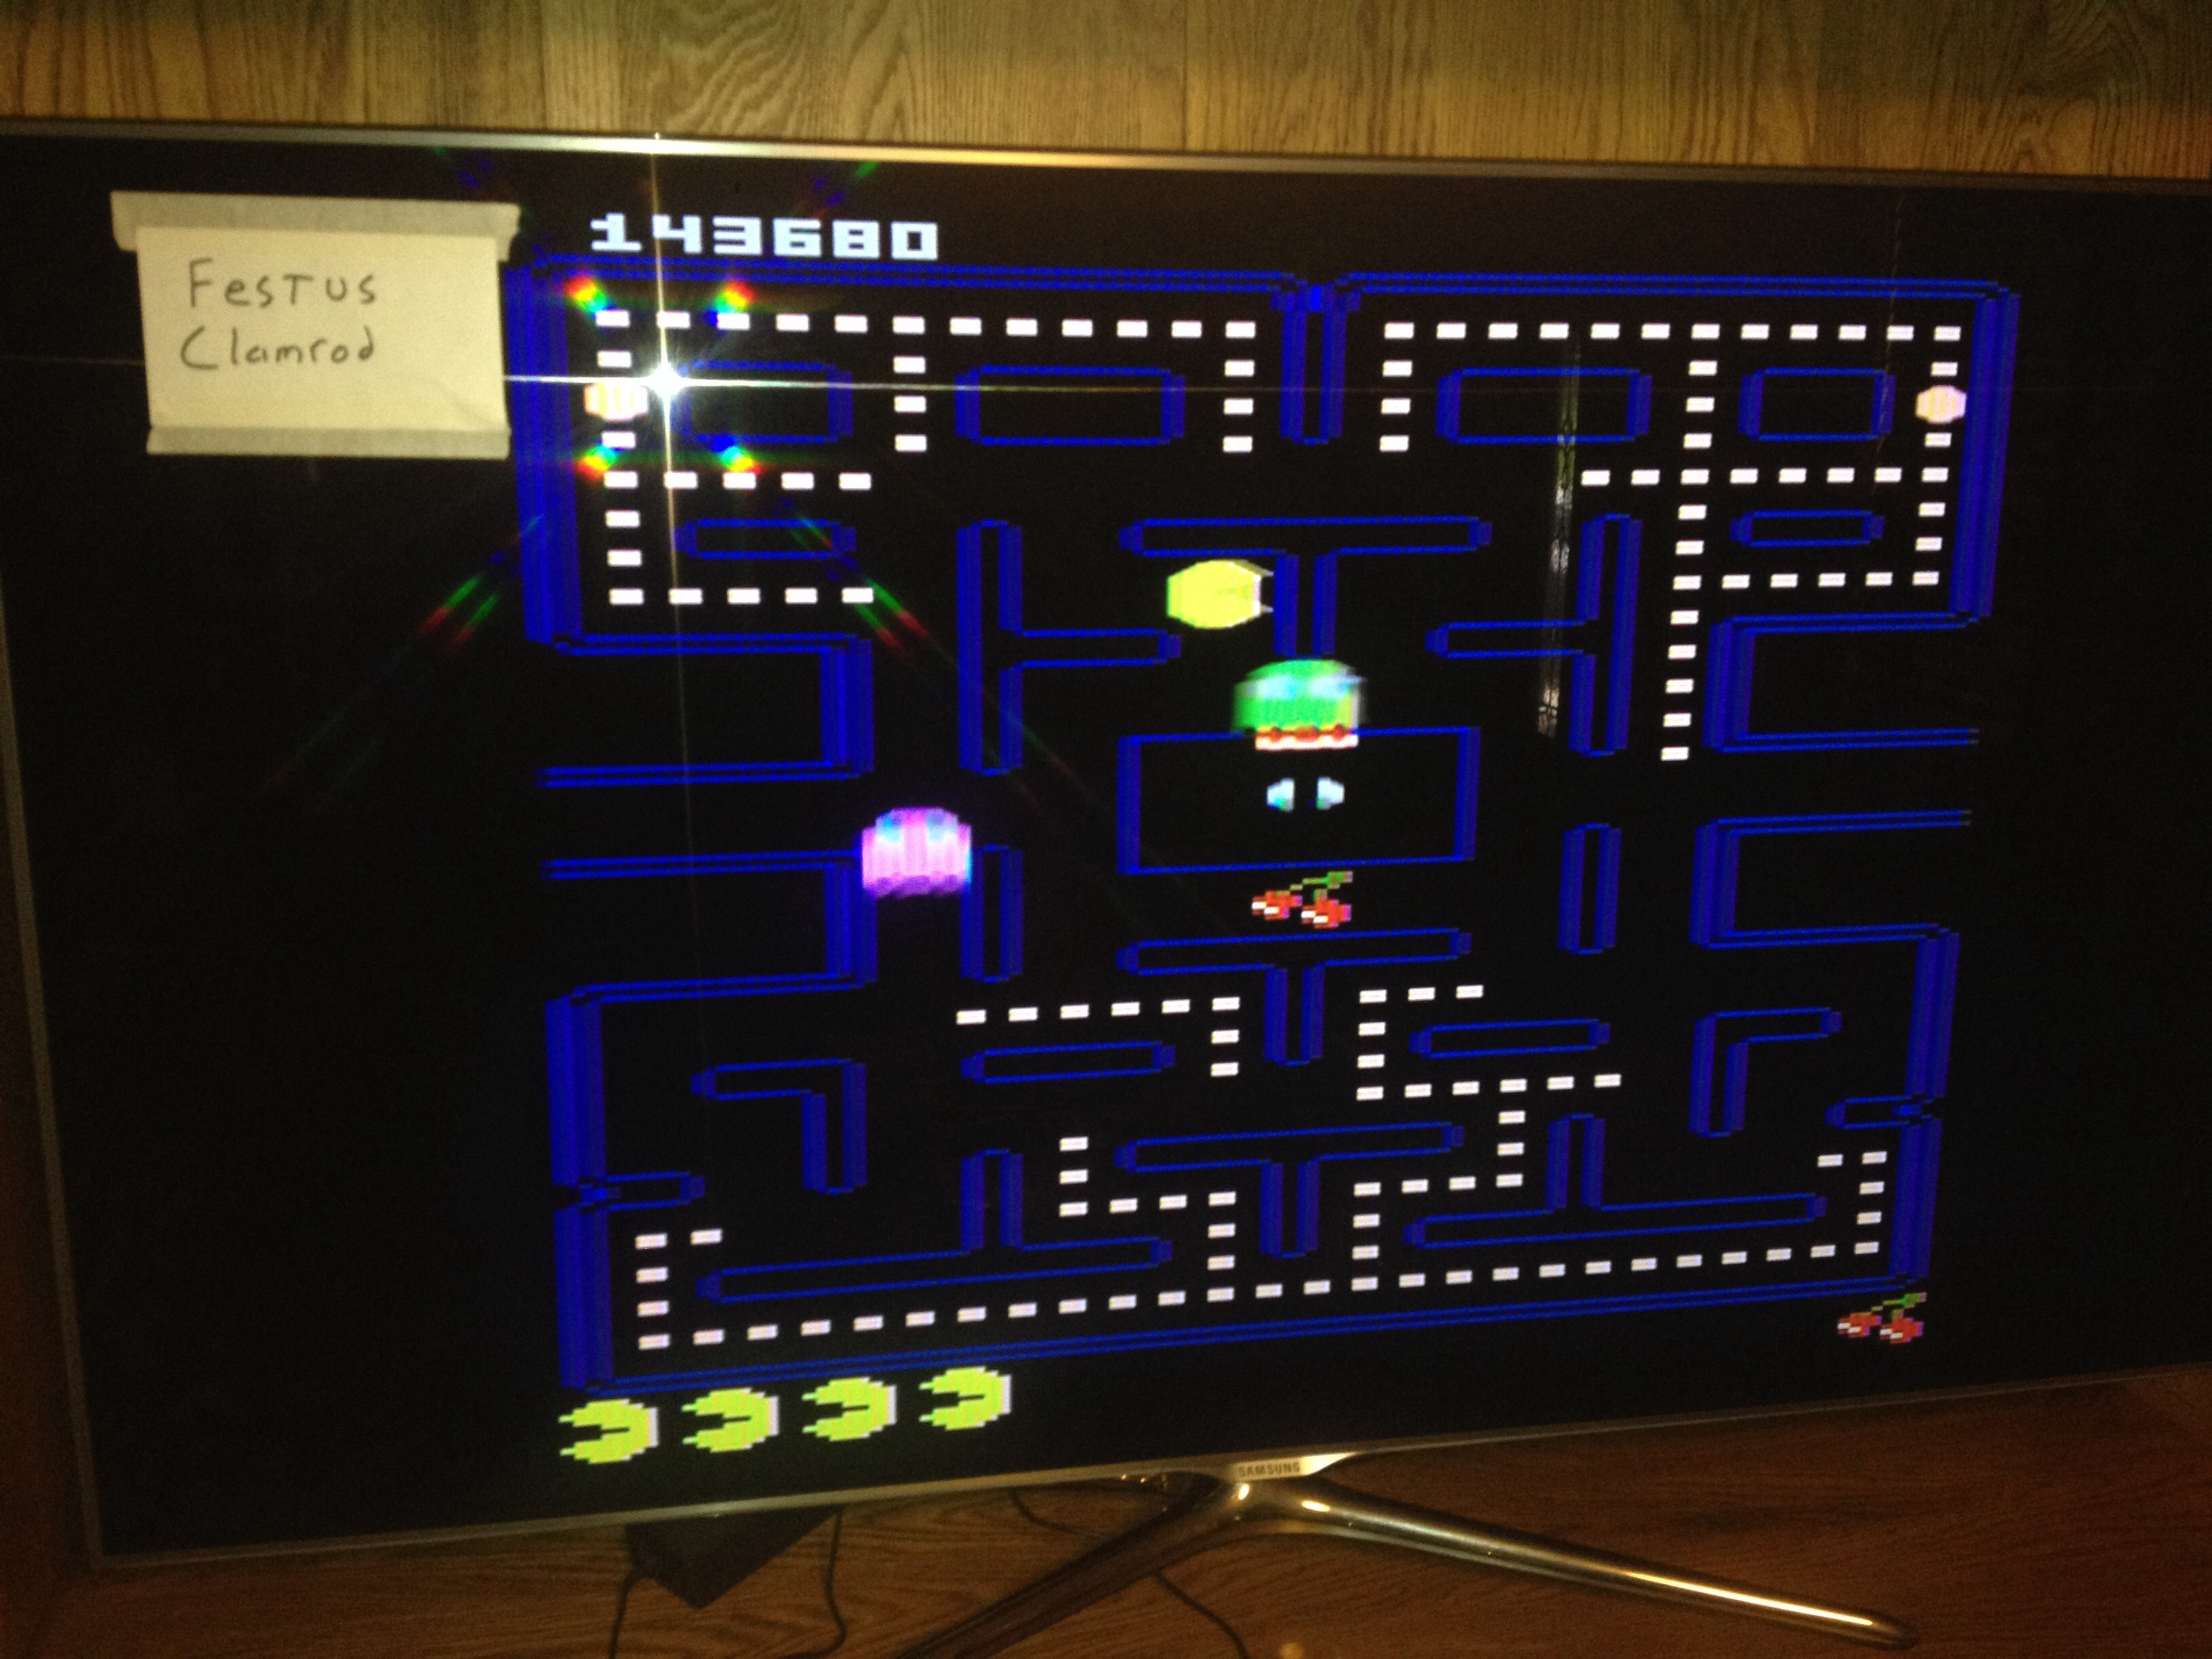 festusclamrod: Pac-Man Collection: Pac-Man [Apple One/Plus Off/Fast On] (Atari 7800) 143,680 points on 2015-06-15 12:45:37